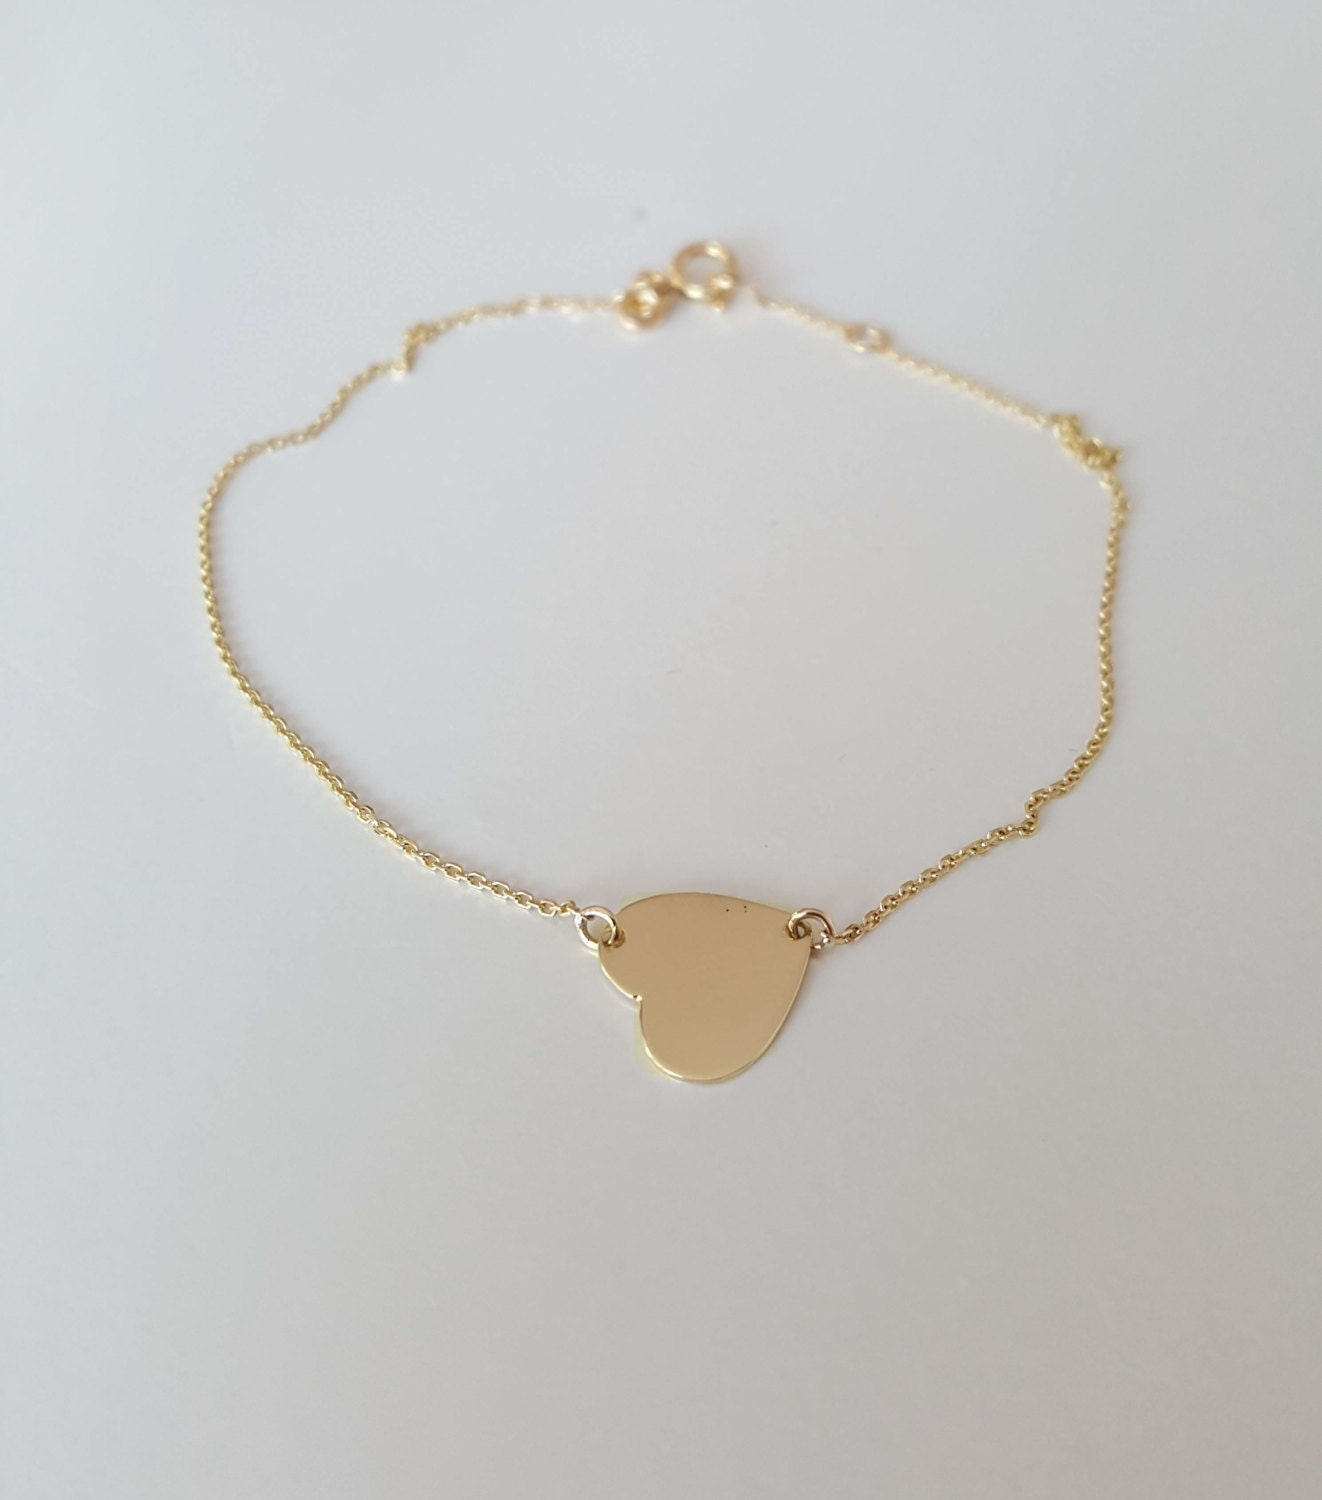 yellow shipping gold watches today overstock floating product solid extender anklet free jewelry with inch heart